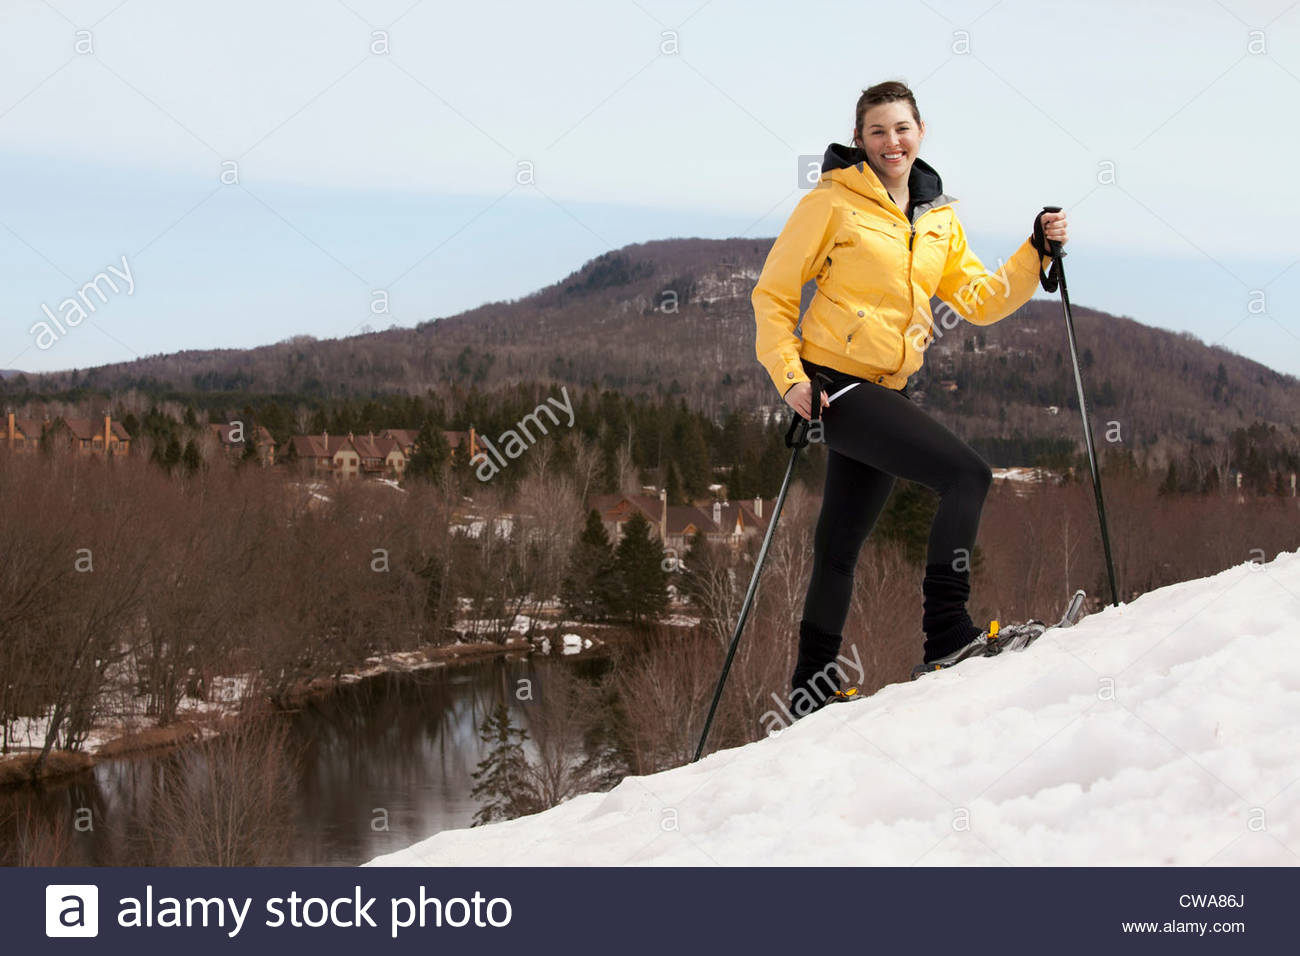 Young woman in skis walking uphill - Stock Image